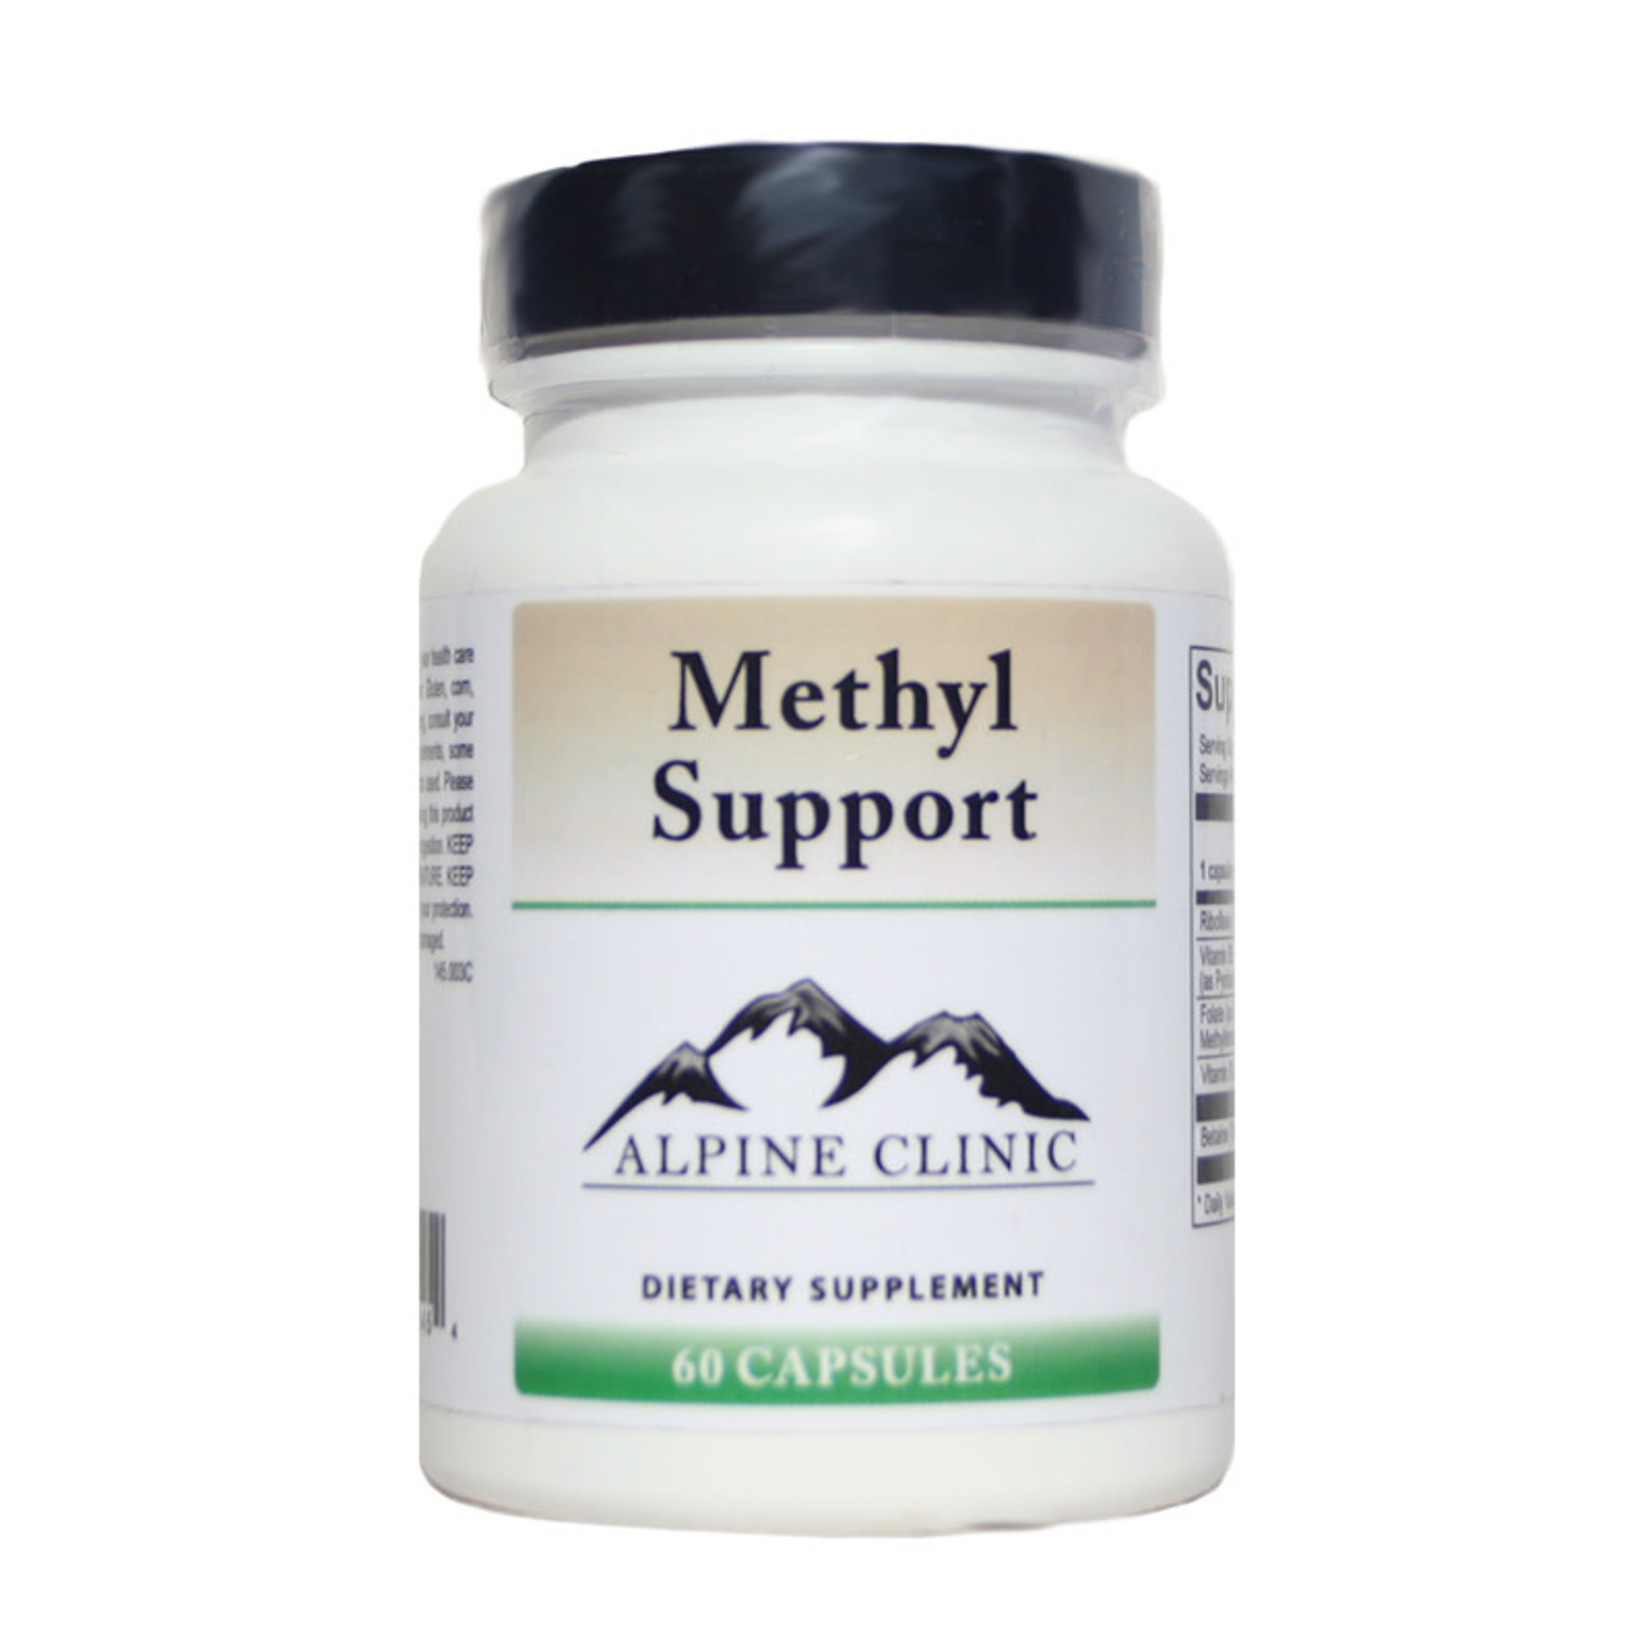 Alpine Clinic Private Label Methyl Support